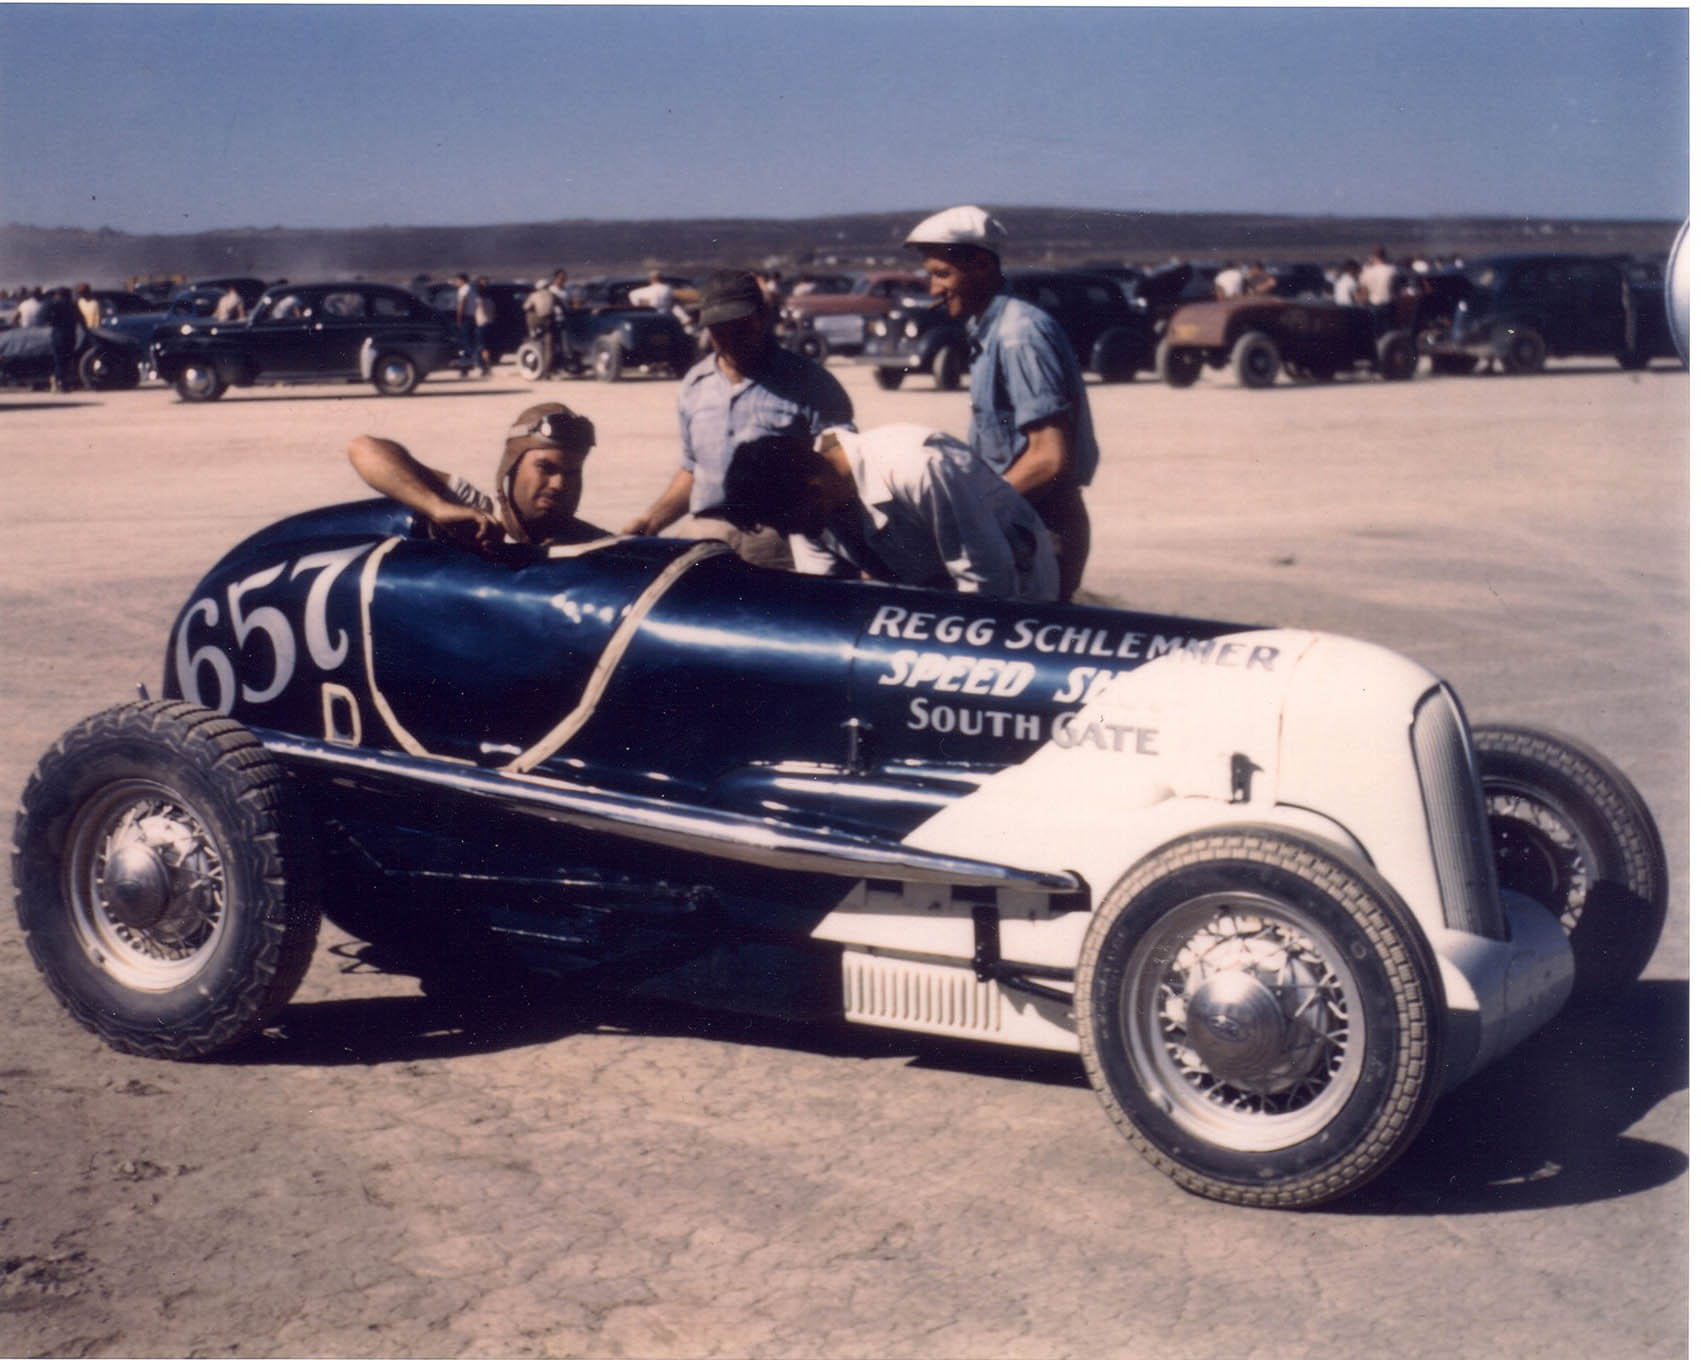 A year later, Emil Dietrich is the car's new owner. A changing SCTA rulebook outlawed modifieds, so Dietrich, like many other modified racers at the time, converted the car to the streamliner class with the addition of a tail panel. In this trim—flathead tuned by Regg Schlemmer, driven by Ed Hulse (seen here) and Kenny Parks—the Dietrich-Thomas car held the streamliner record and tied for First in points for the 1947 season.